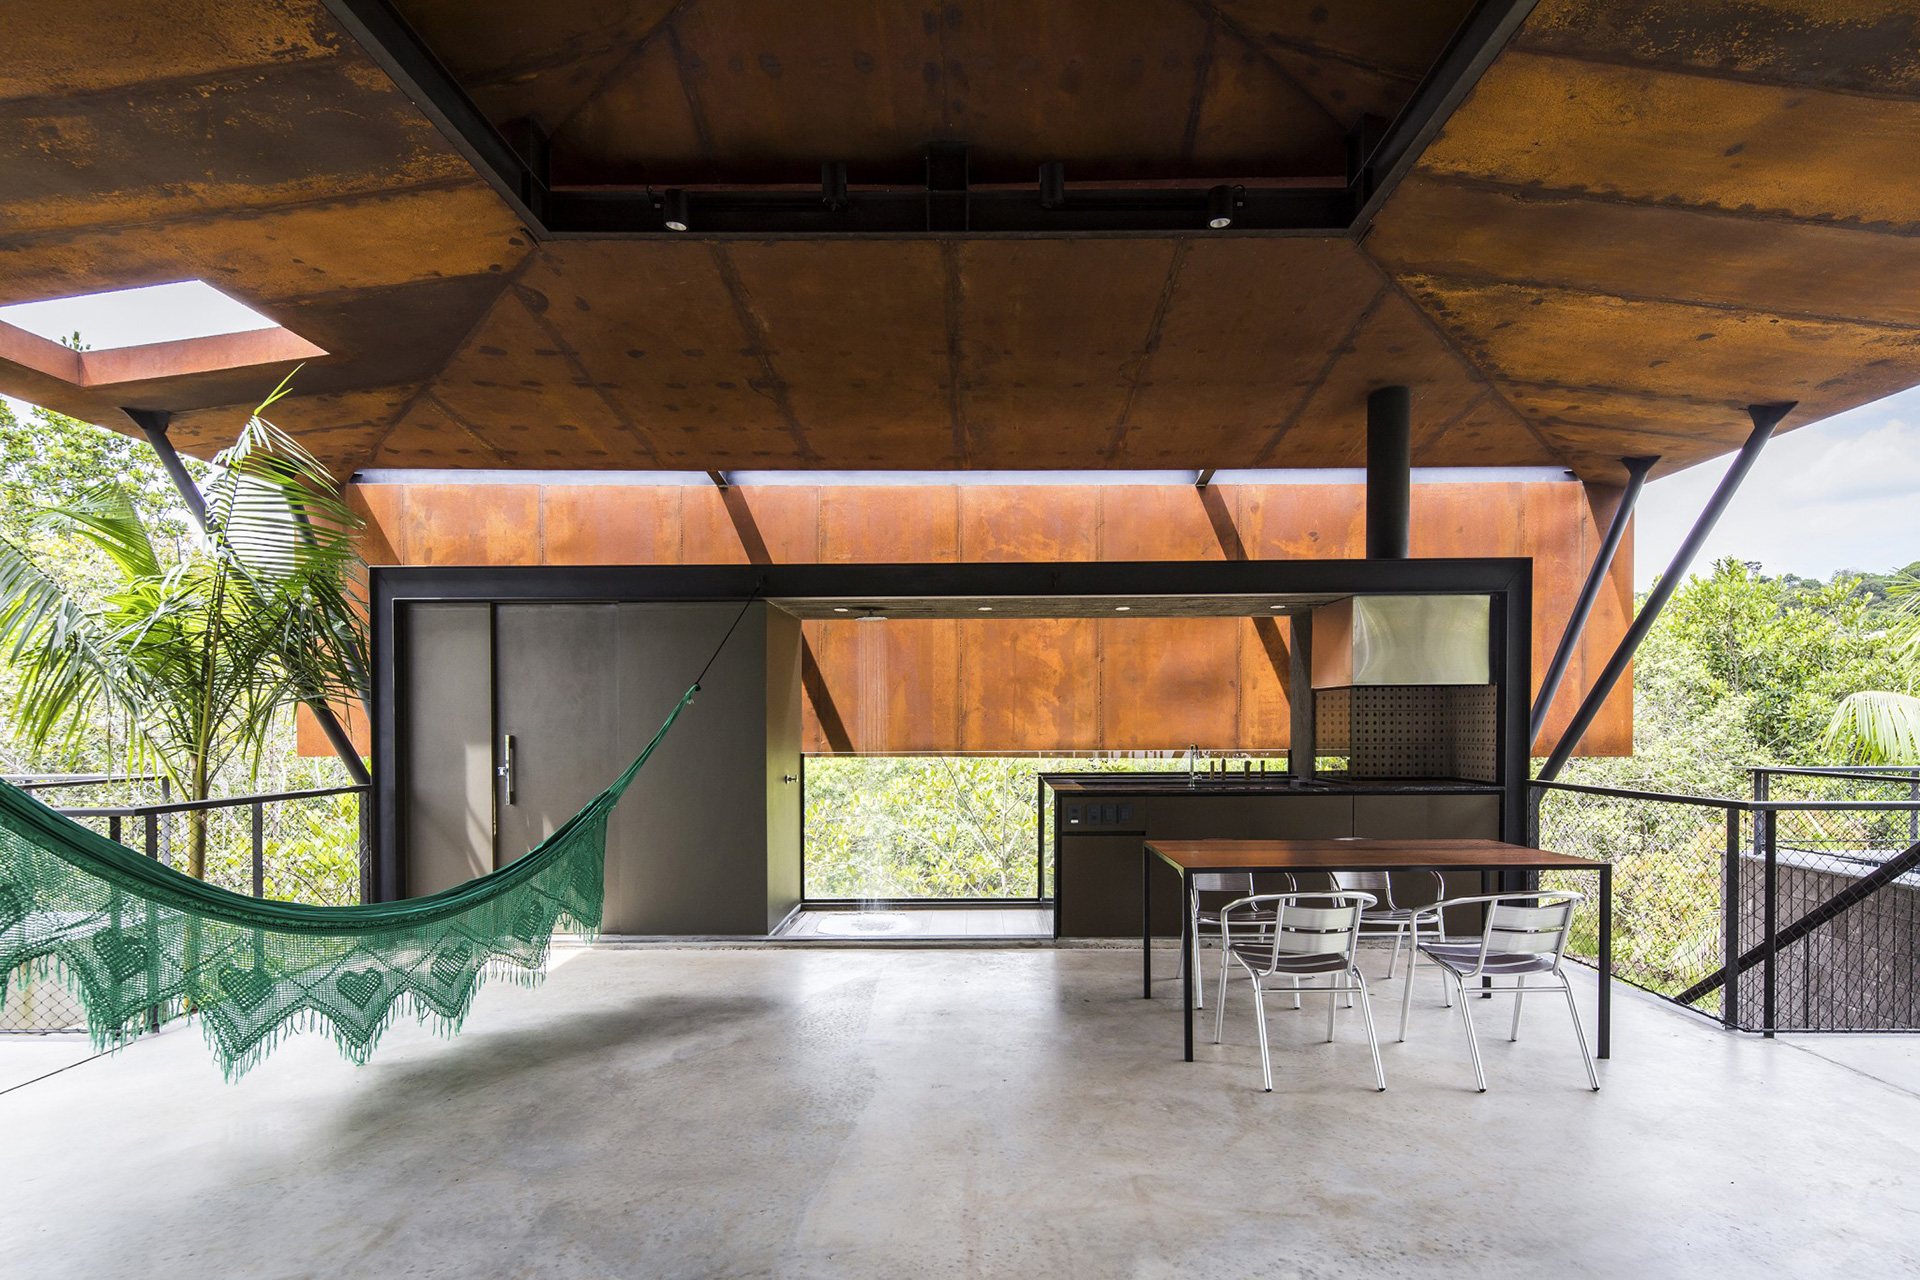 Casa Campinarana, Manaus, Brazil, by Laurent Troost | Dezeen | Architecture | Awards | 2019 |  STIRworld